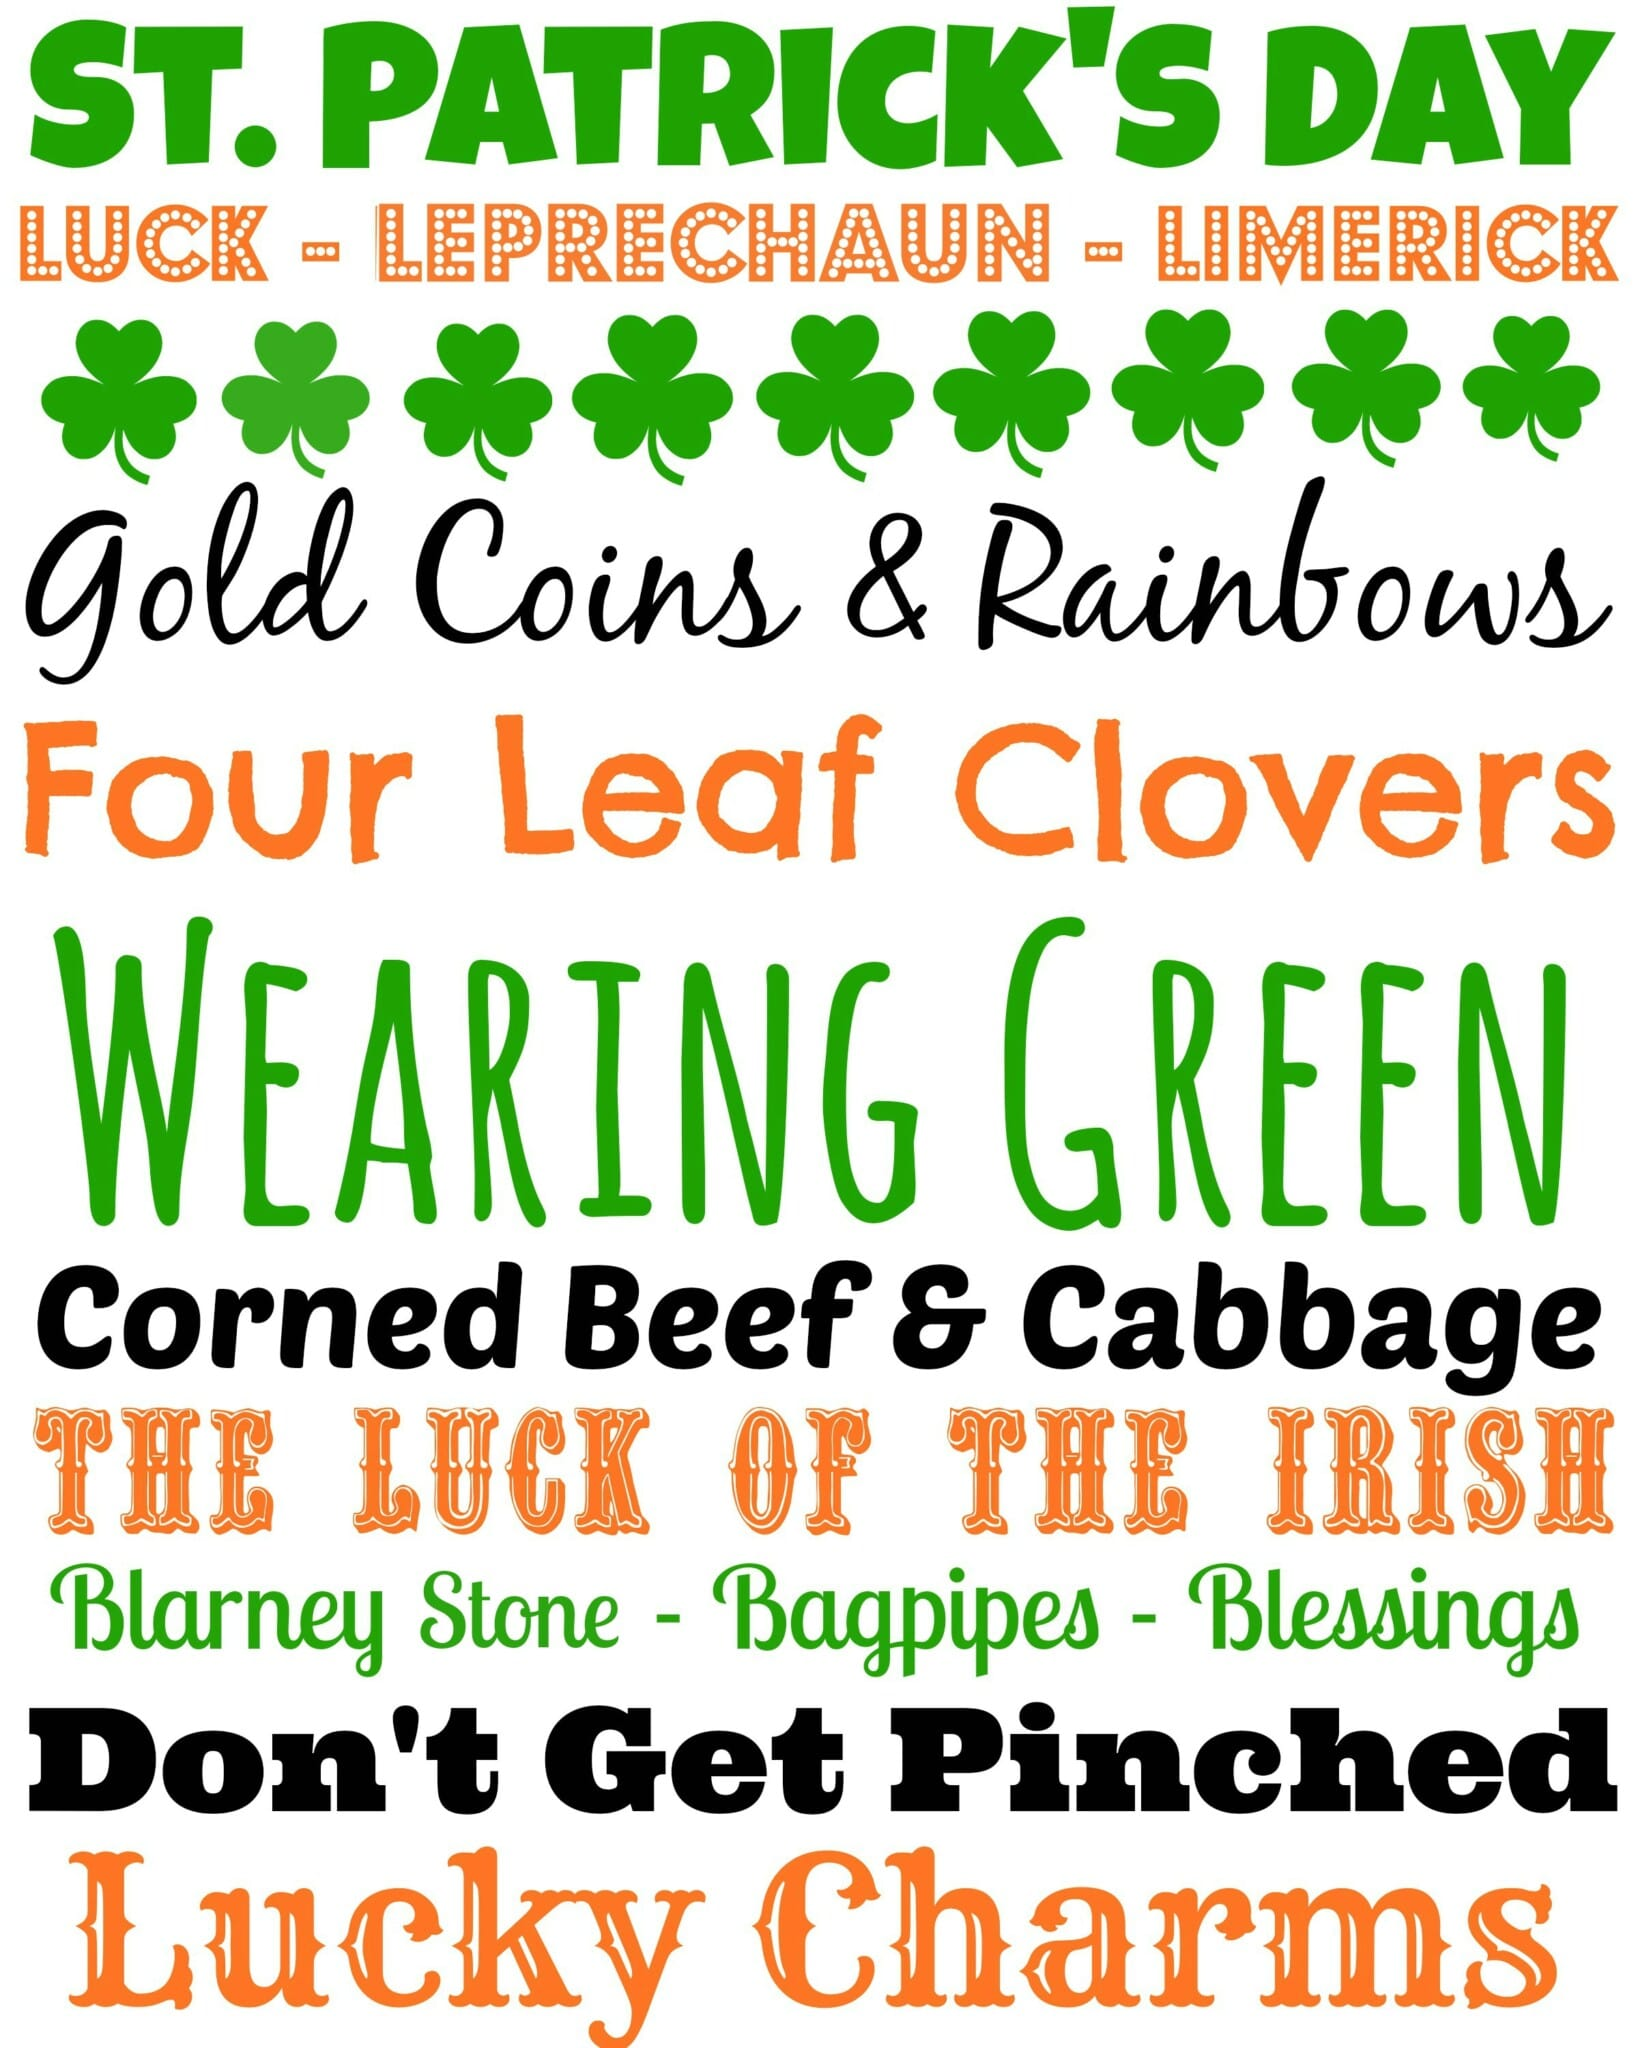 Words for St. Patrick's Day games for adults